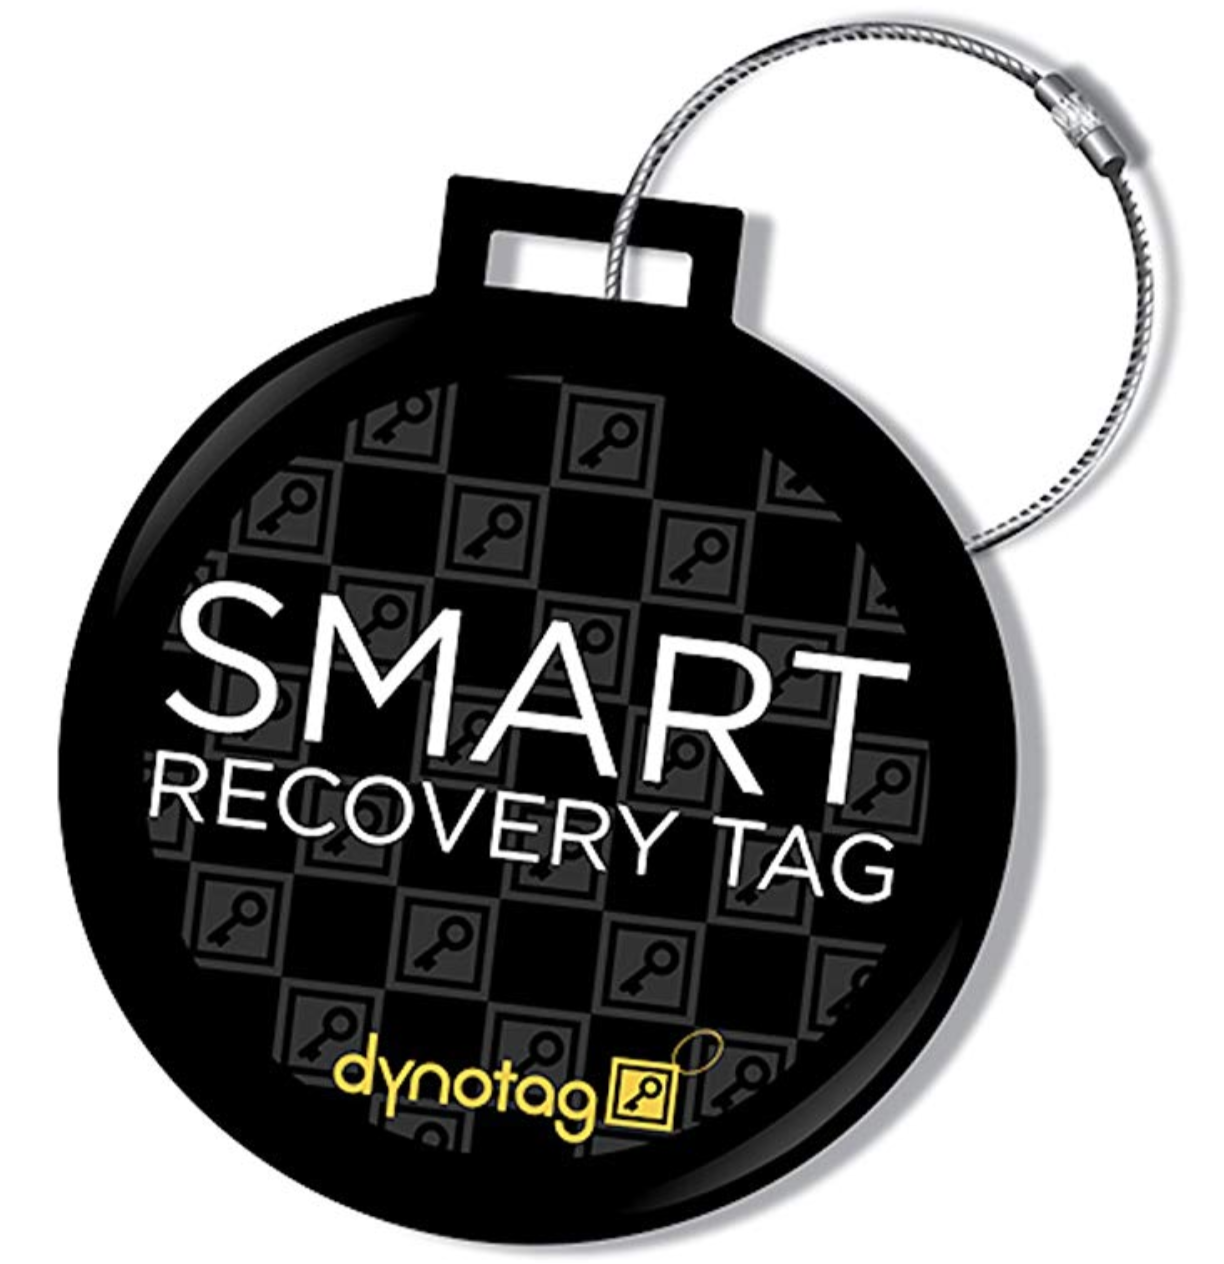 smart recovery luggage tag gift ideas on amazon